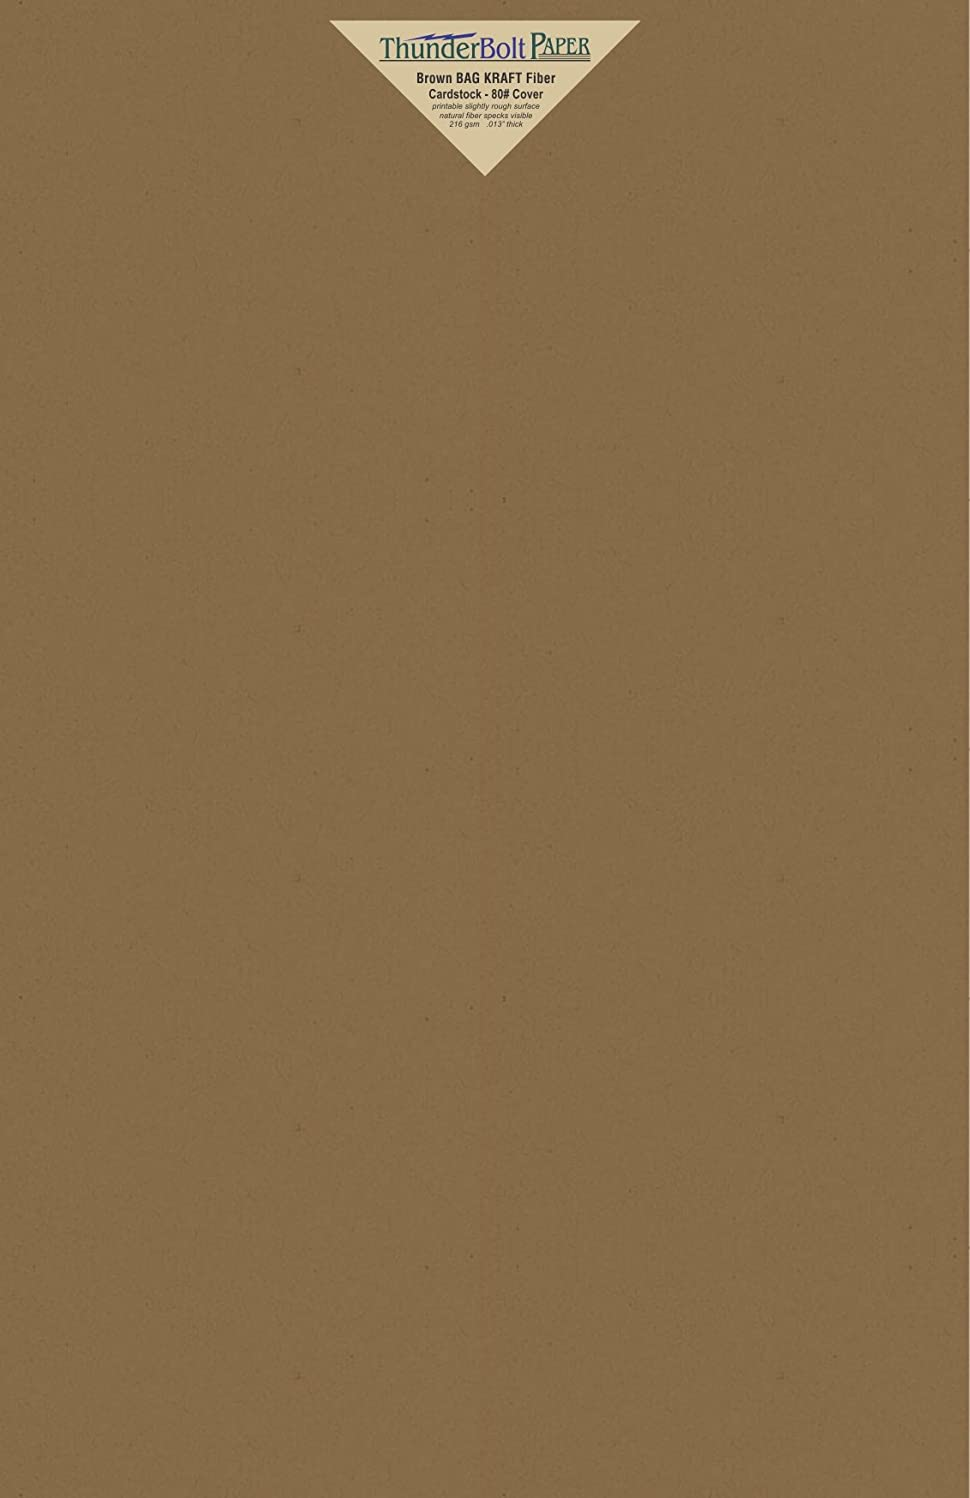 15 Brown Bag Colored Cardstock Paper Sheets - 12 X 18 inches Large|Poster Size – 80 lb/Pound Cover|Card Weight 216 GSM - Natural Kraft Fiber with Darker Specks - Slightly Rough Finish